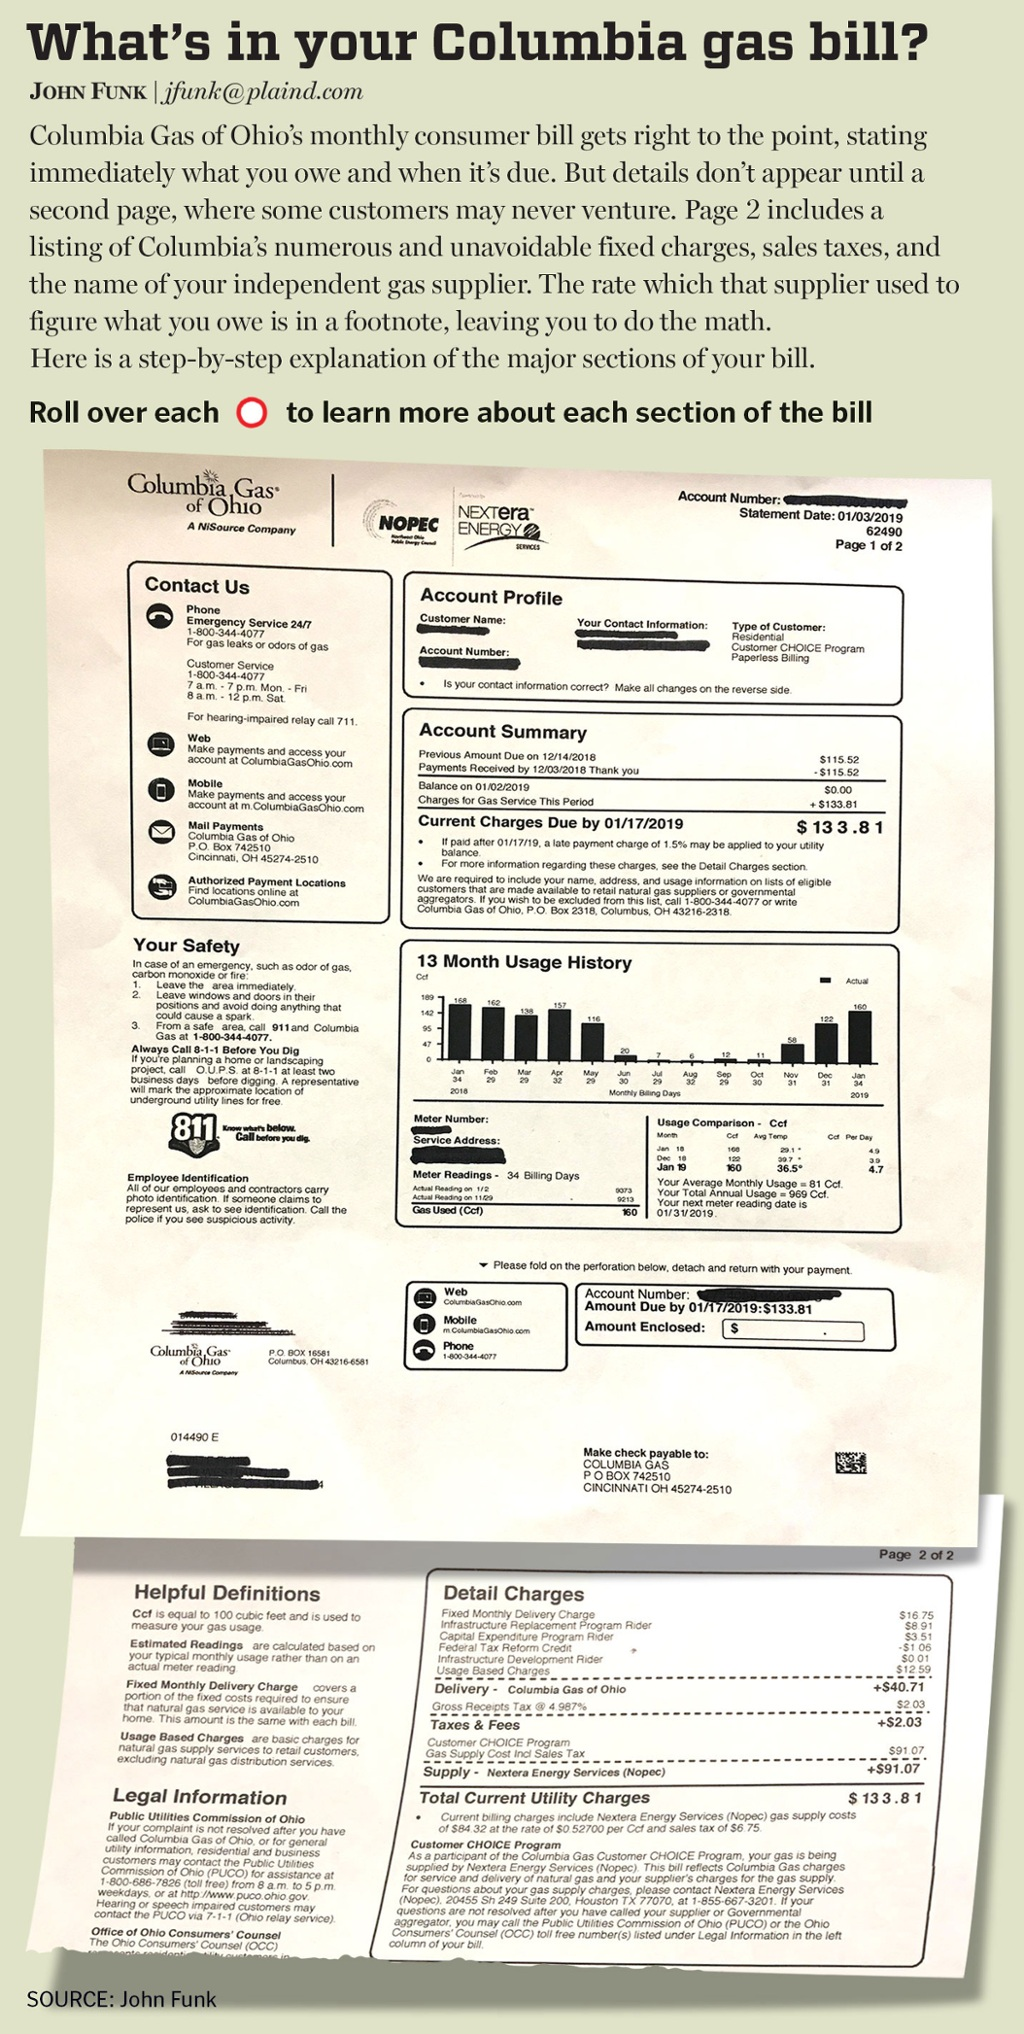 Here's how to read and understand your Columbia gas bill